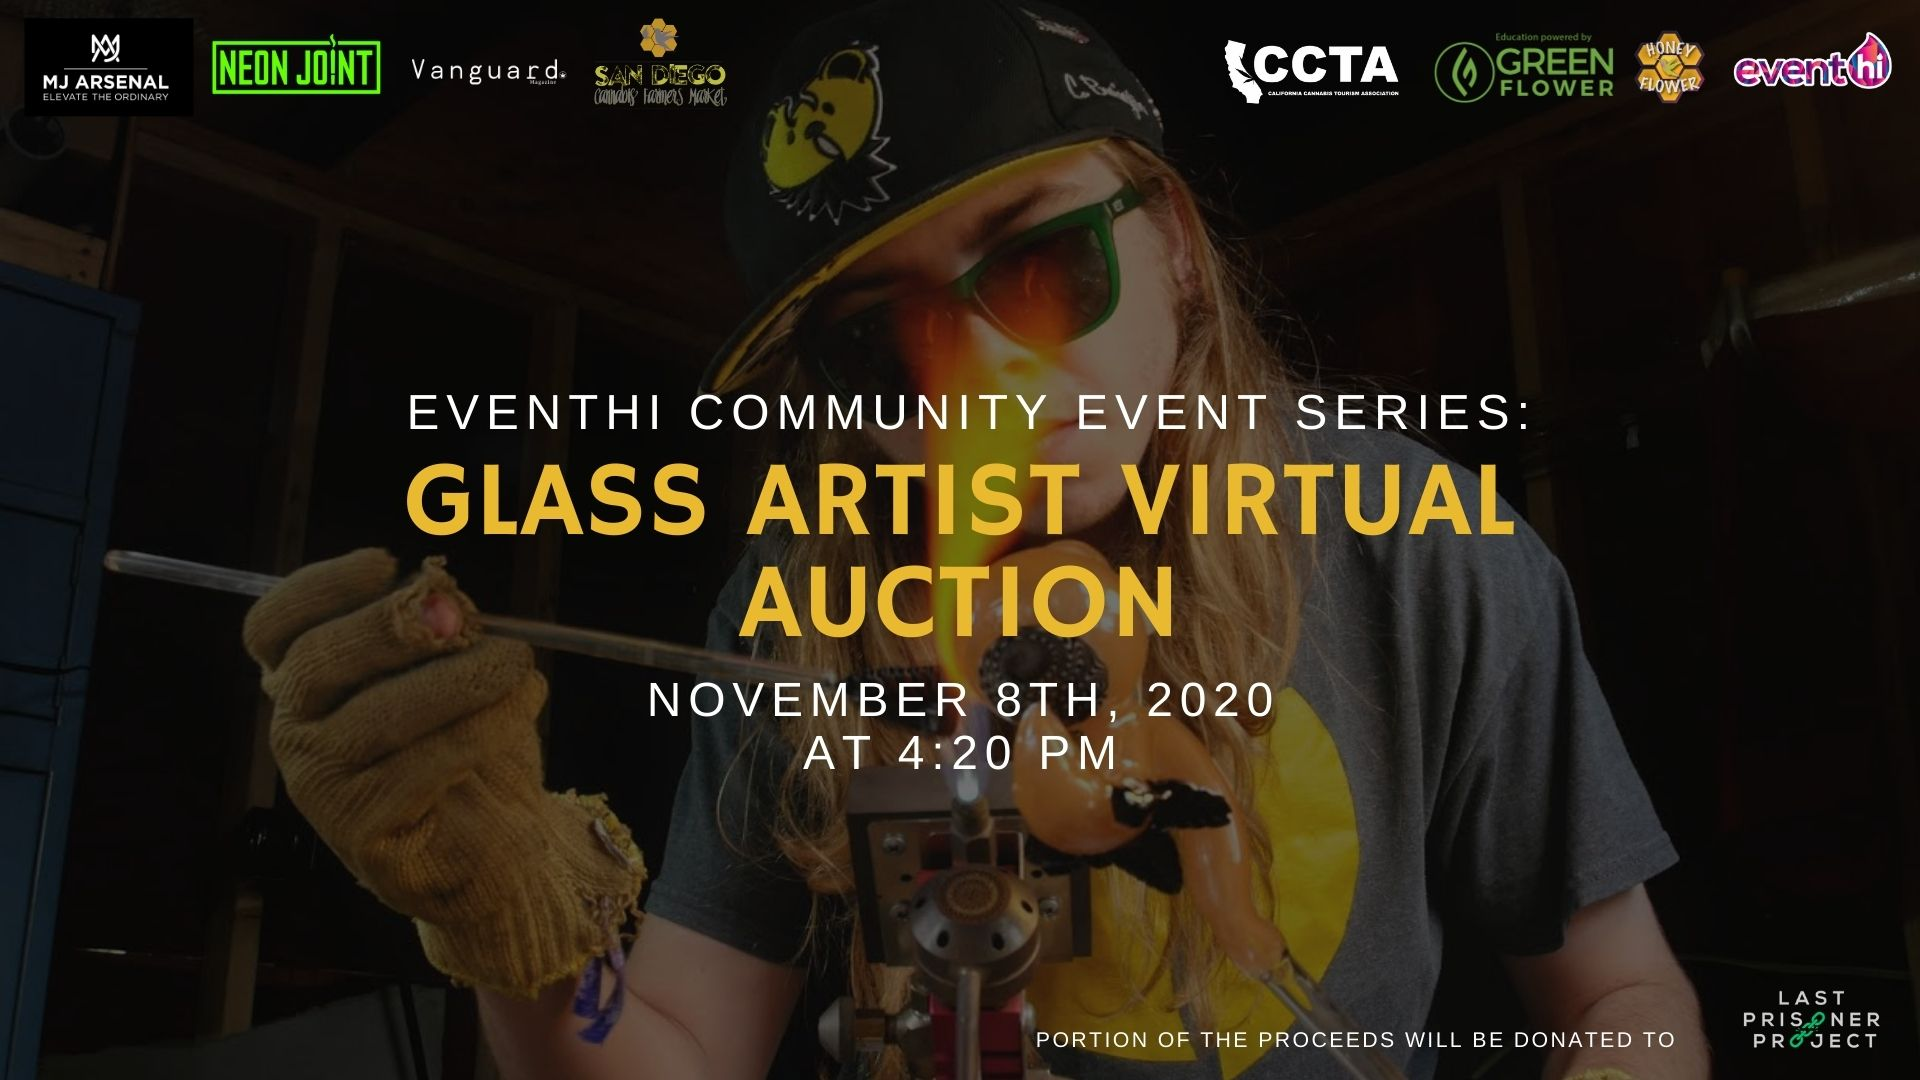 EventHi Community Event Series: Glass Art Virtual Auction